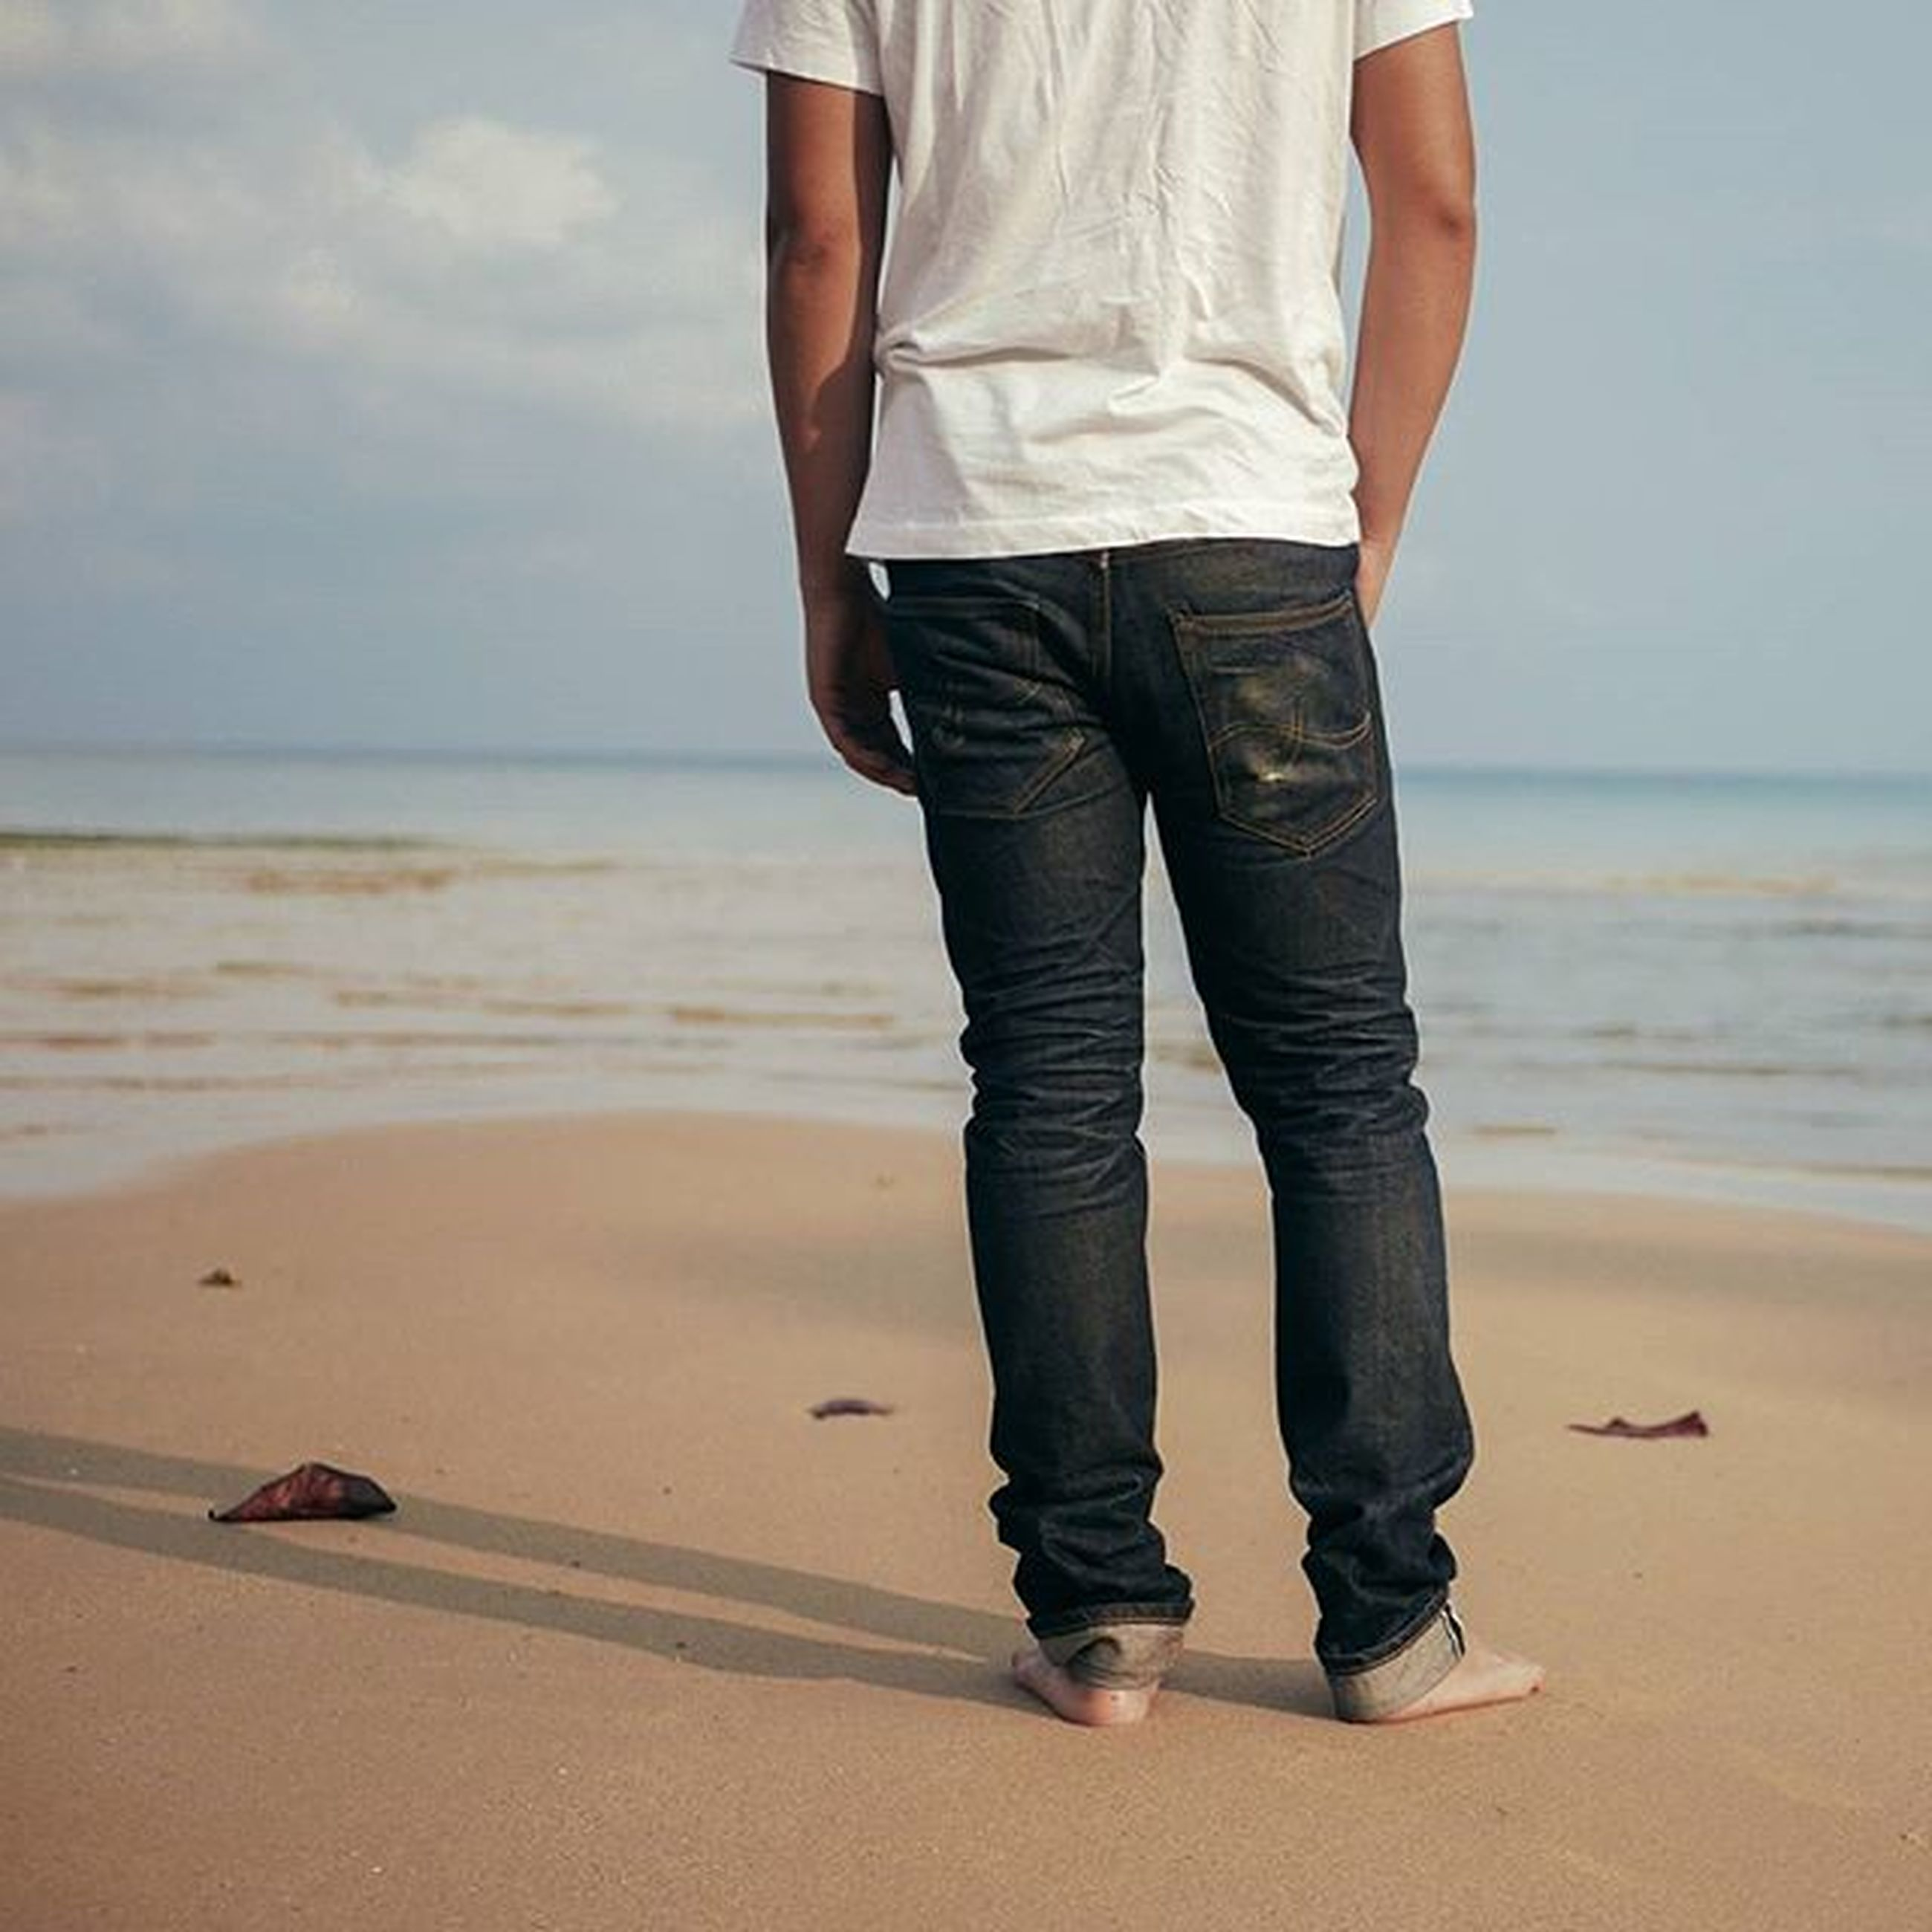 beach, sea, low section, shore, sand, standing, lifestyles, water, person, leisure activity, horizon over water, rear view, sky, men, walking, vacations, casual clothing